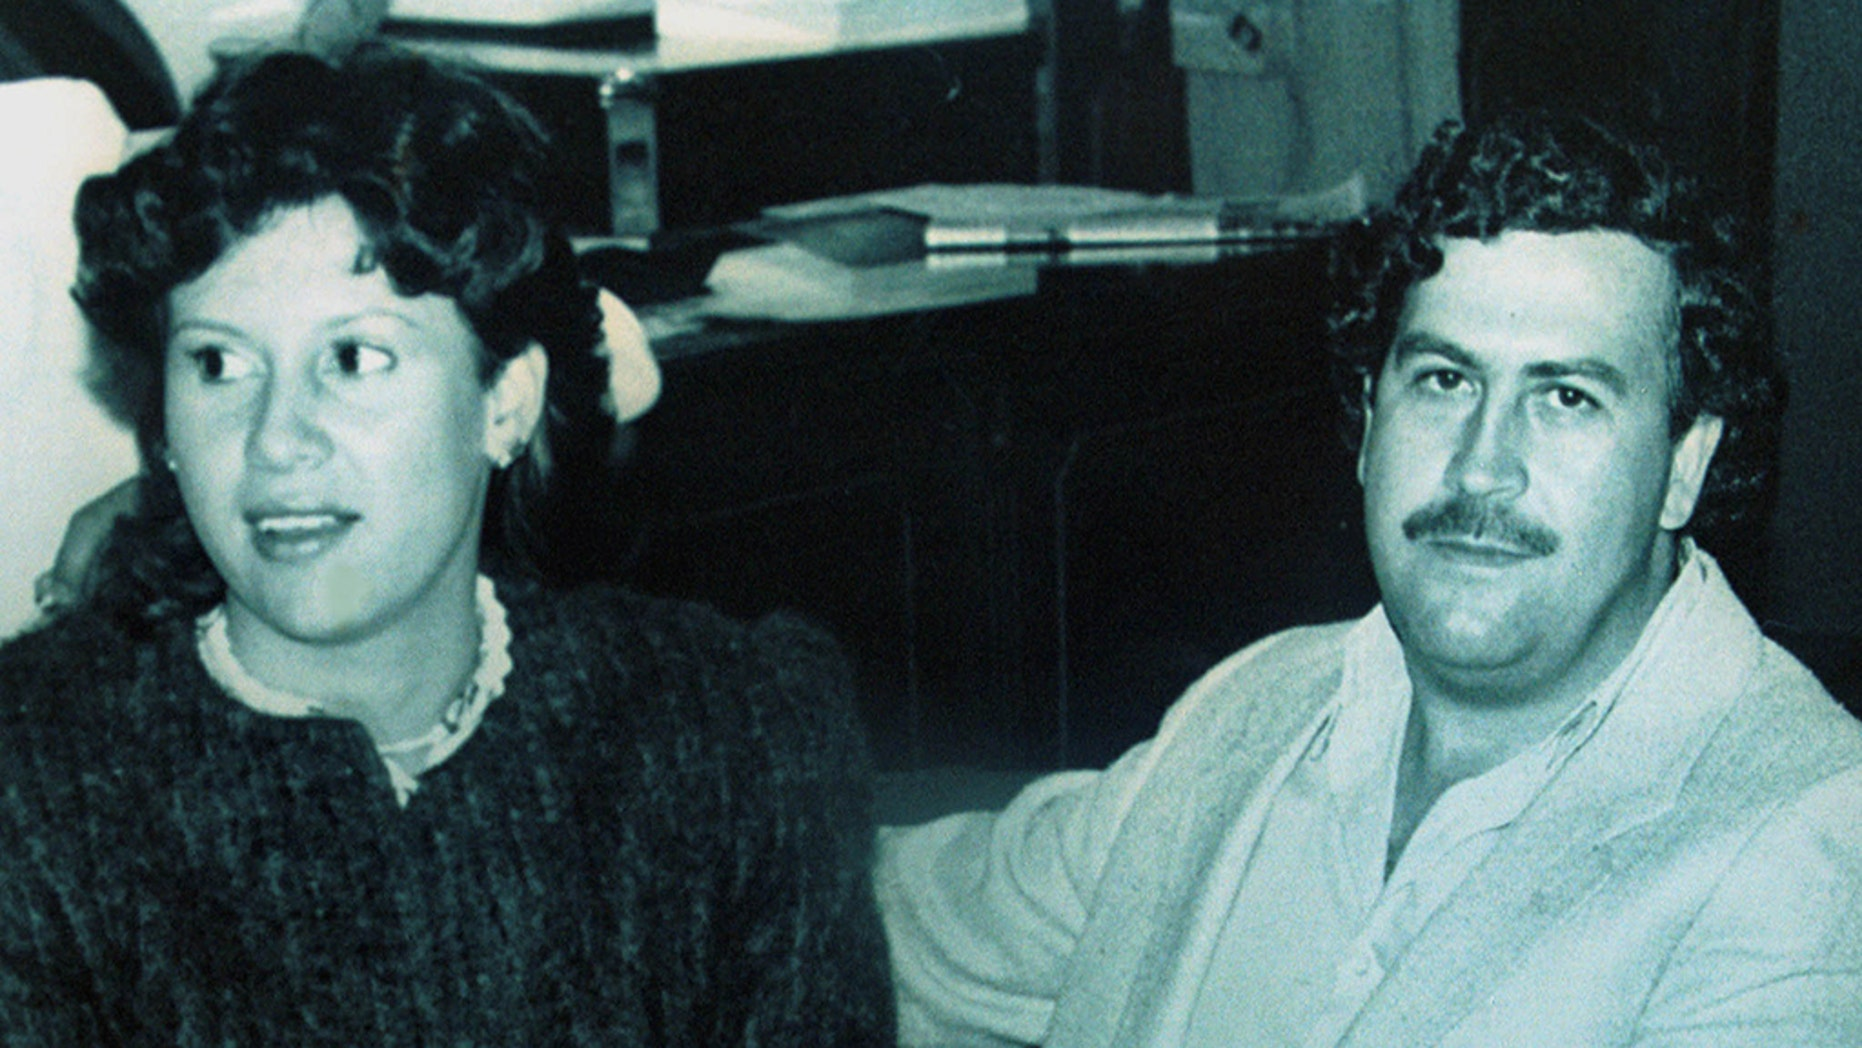 Pablo Escobar's widow, Victoria Henao, and her son were held on money laundering charges in Argentina.